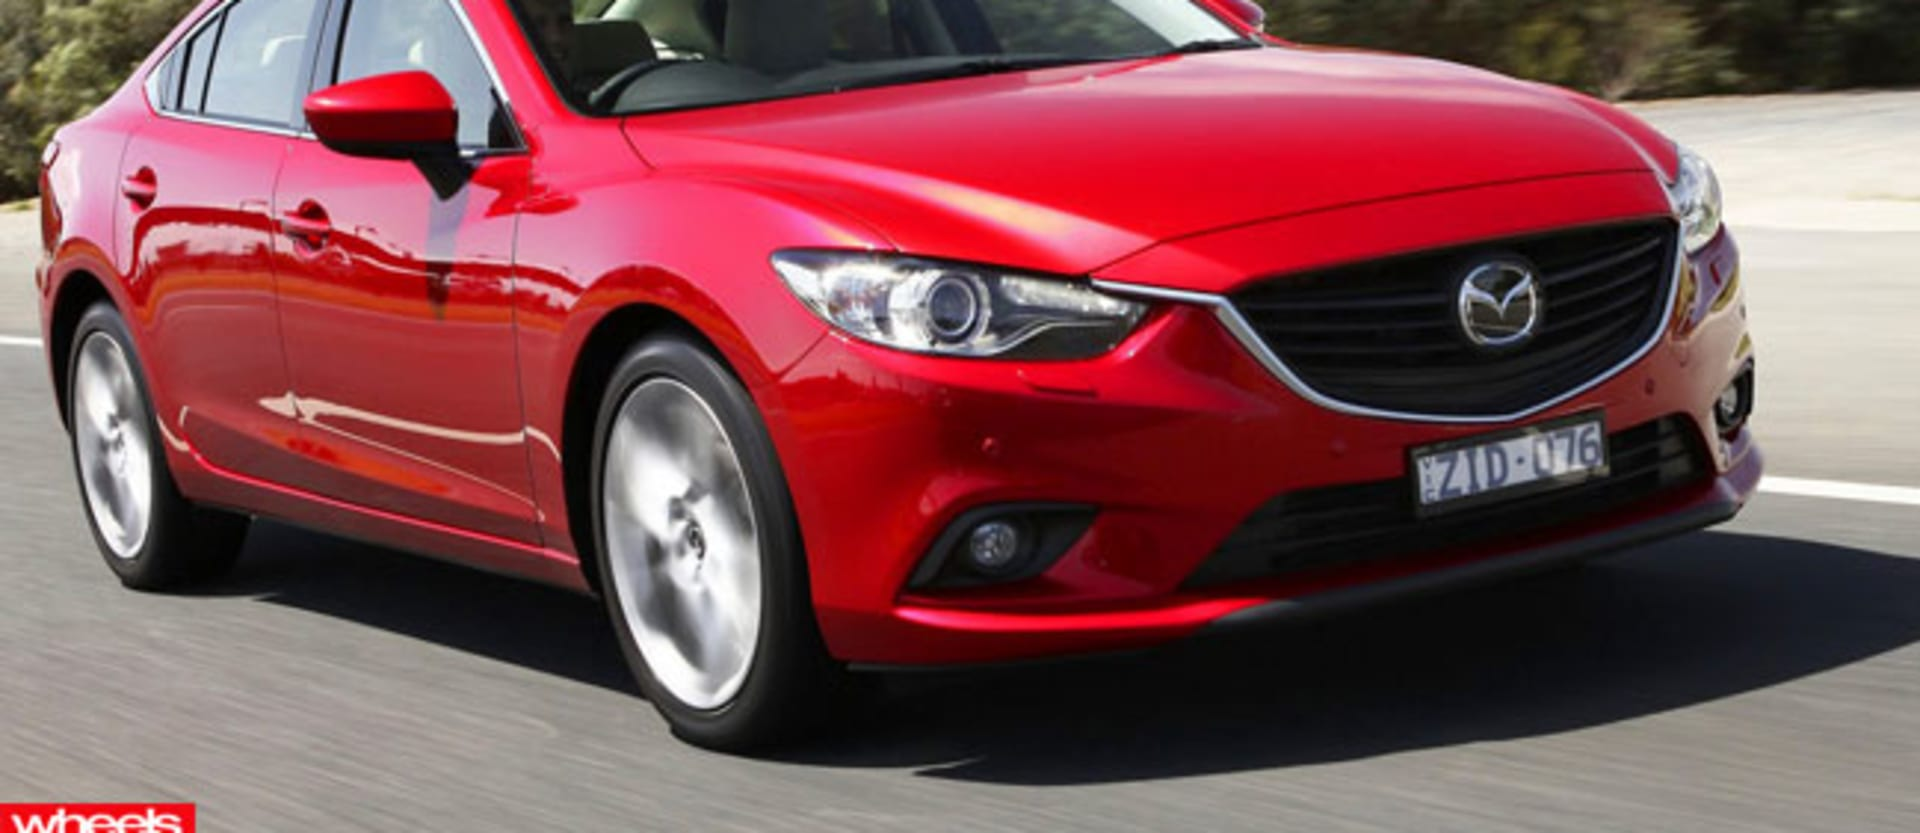 Review: Mazda 6 2013, price, wheels magazine, Review: Subaru Forester, Interior, suv, video, pictures